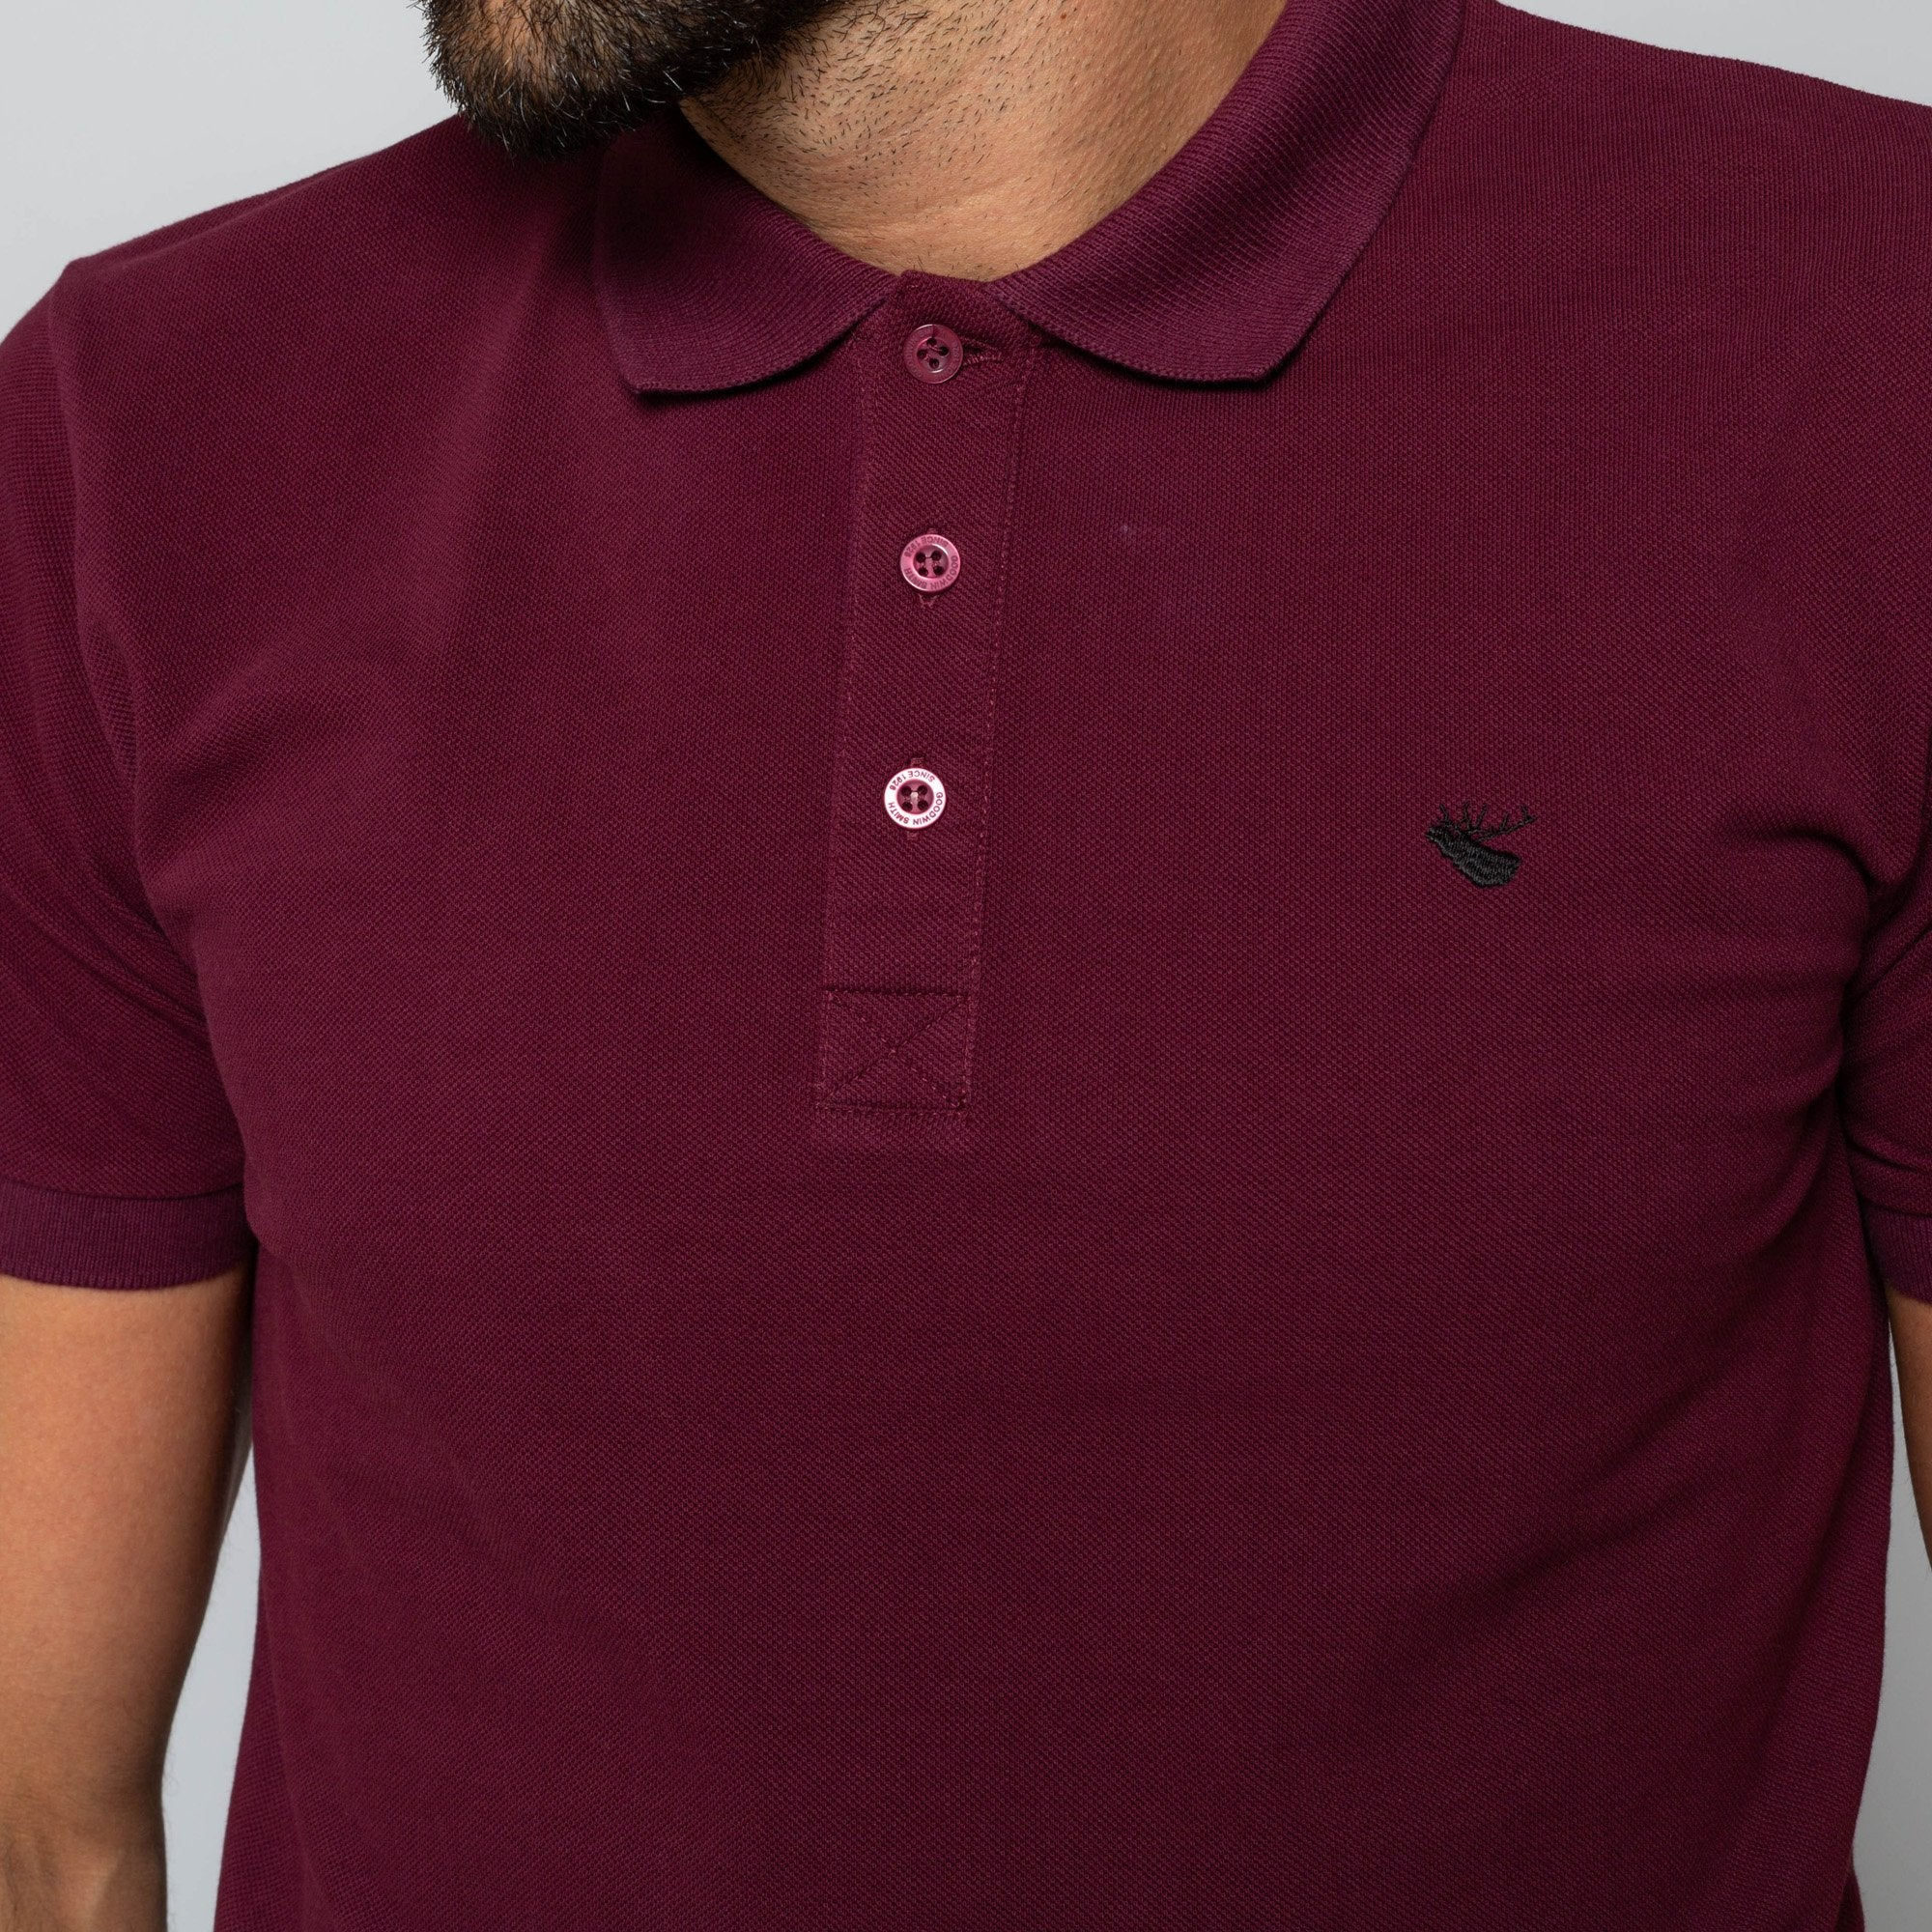 Goodwin Smith Clothing S / Maroon / Cotton Pique HINCHLEY MAROON